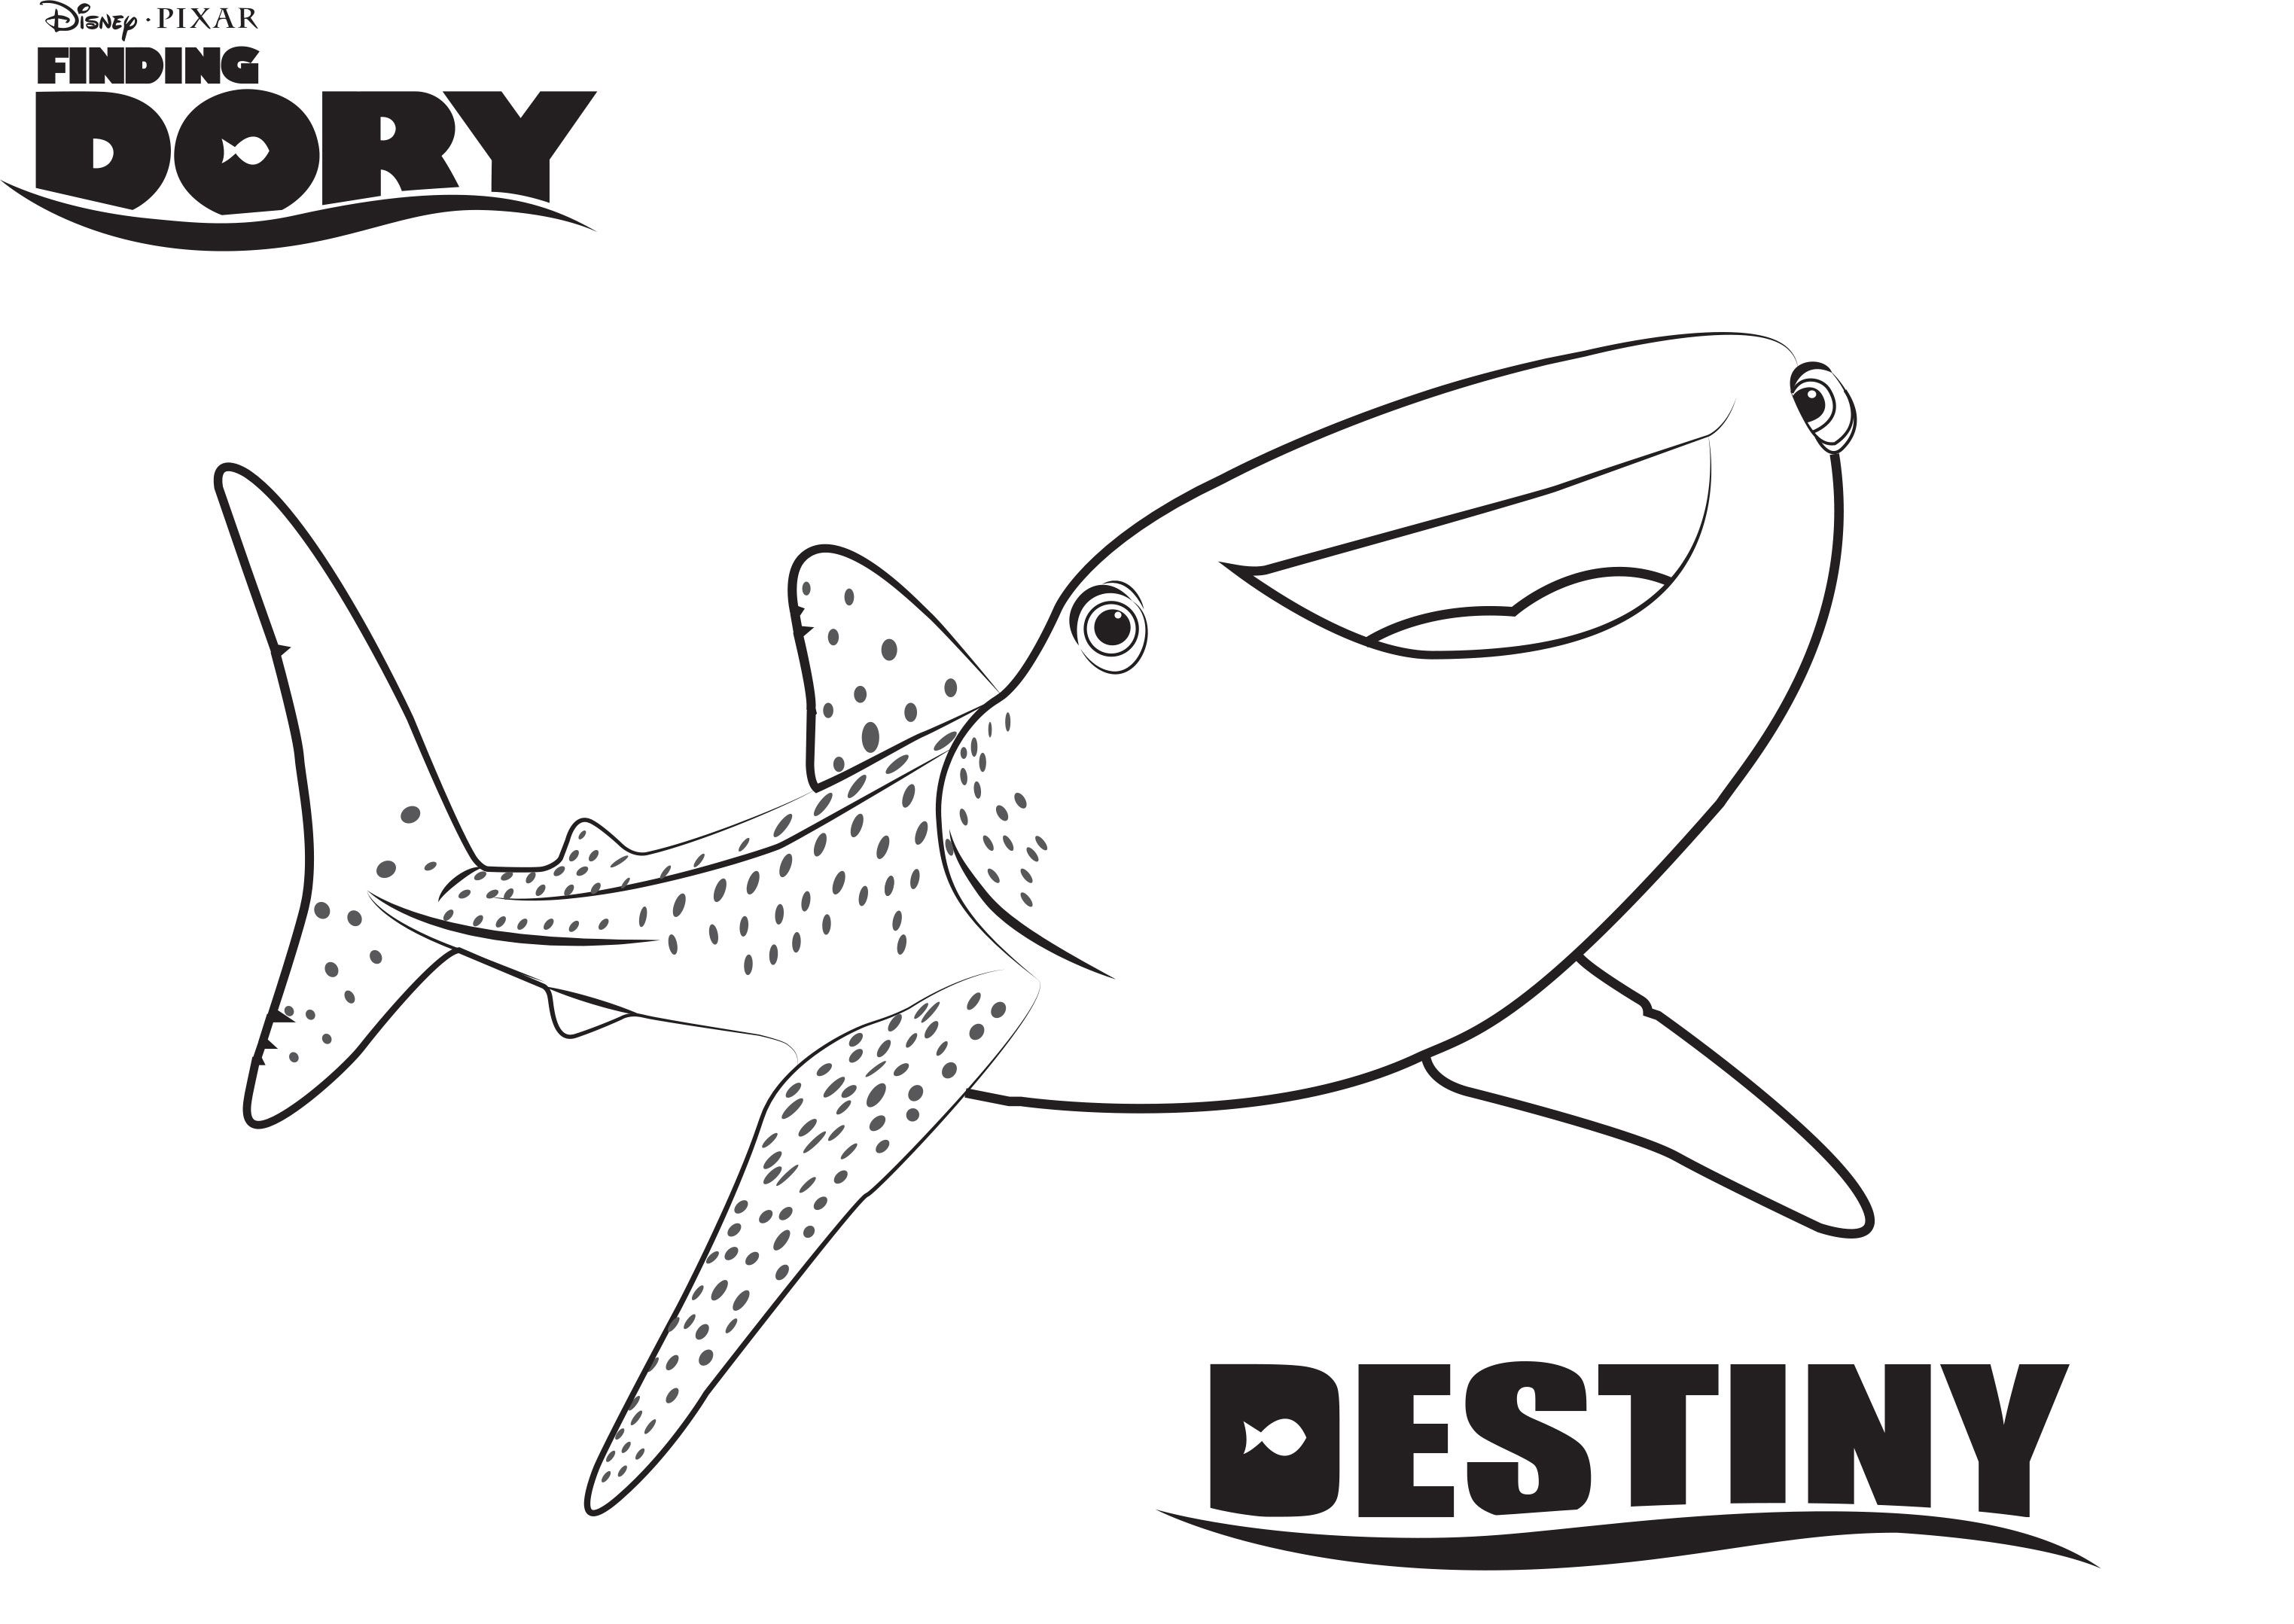 Disneys Finding Dory Coloring Pages Sheet Free Disney Printable